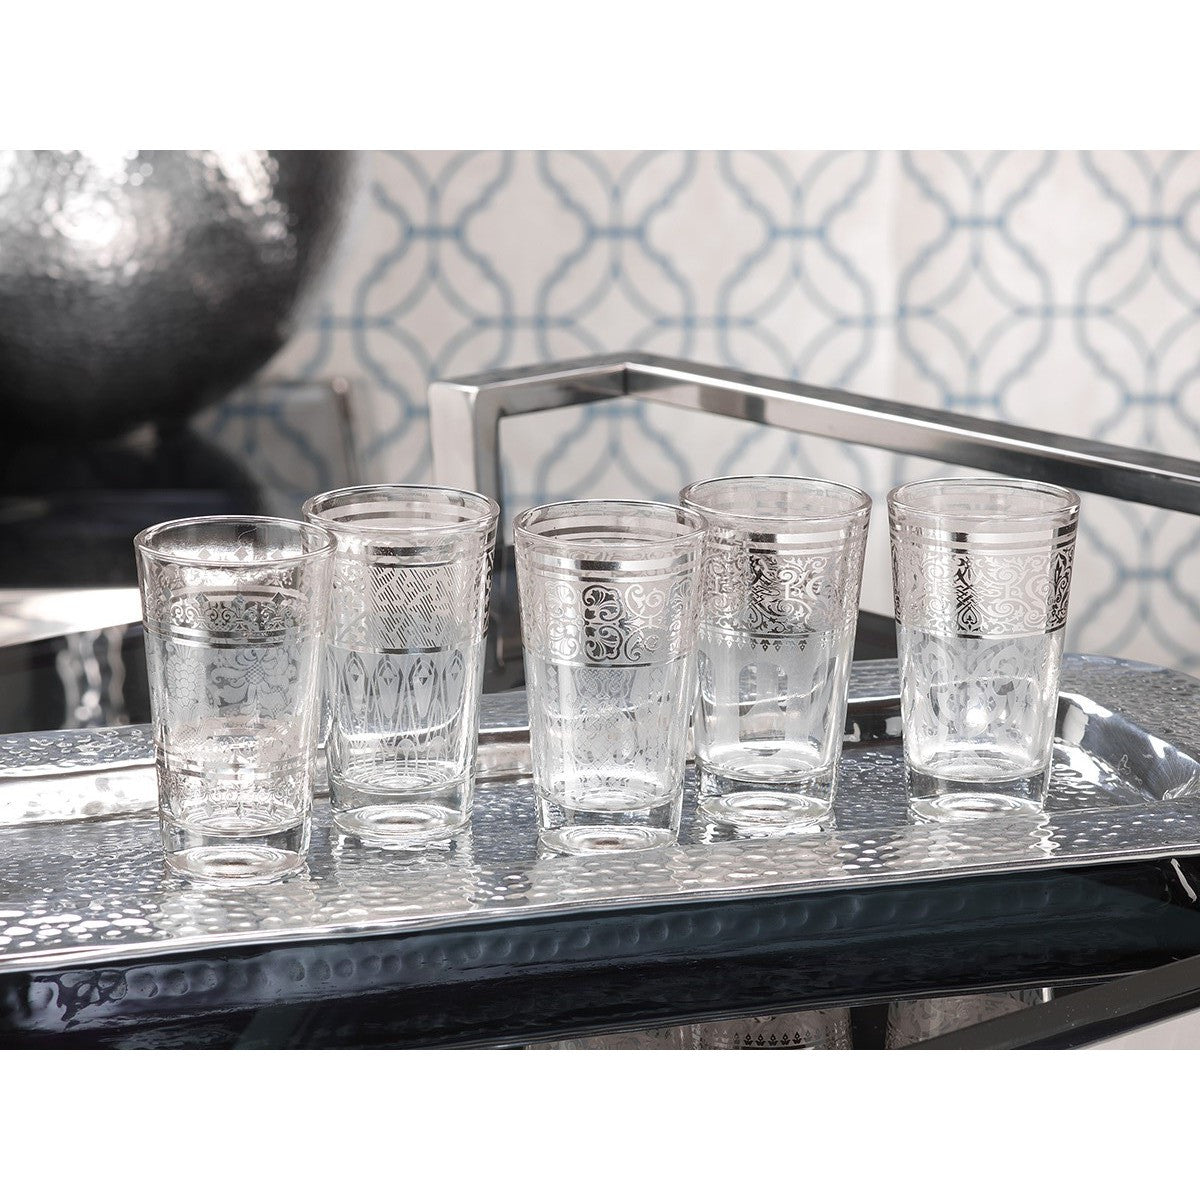 Casablanca Glass Tealight Holders - White - Set of 12 - CARLYLE AVENUE